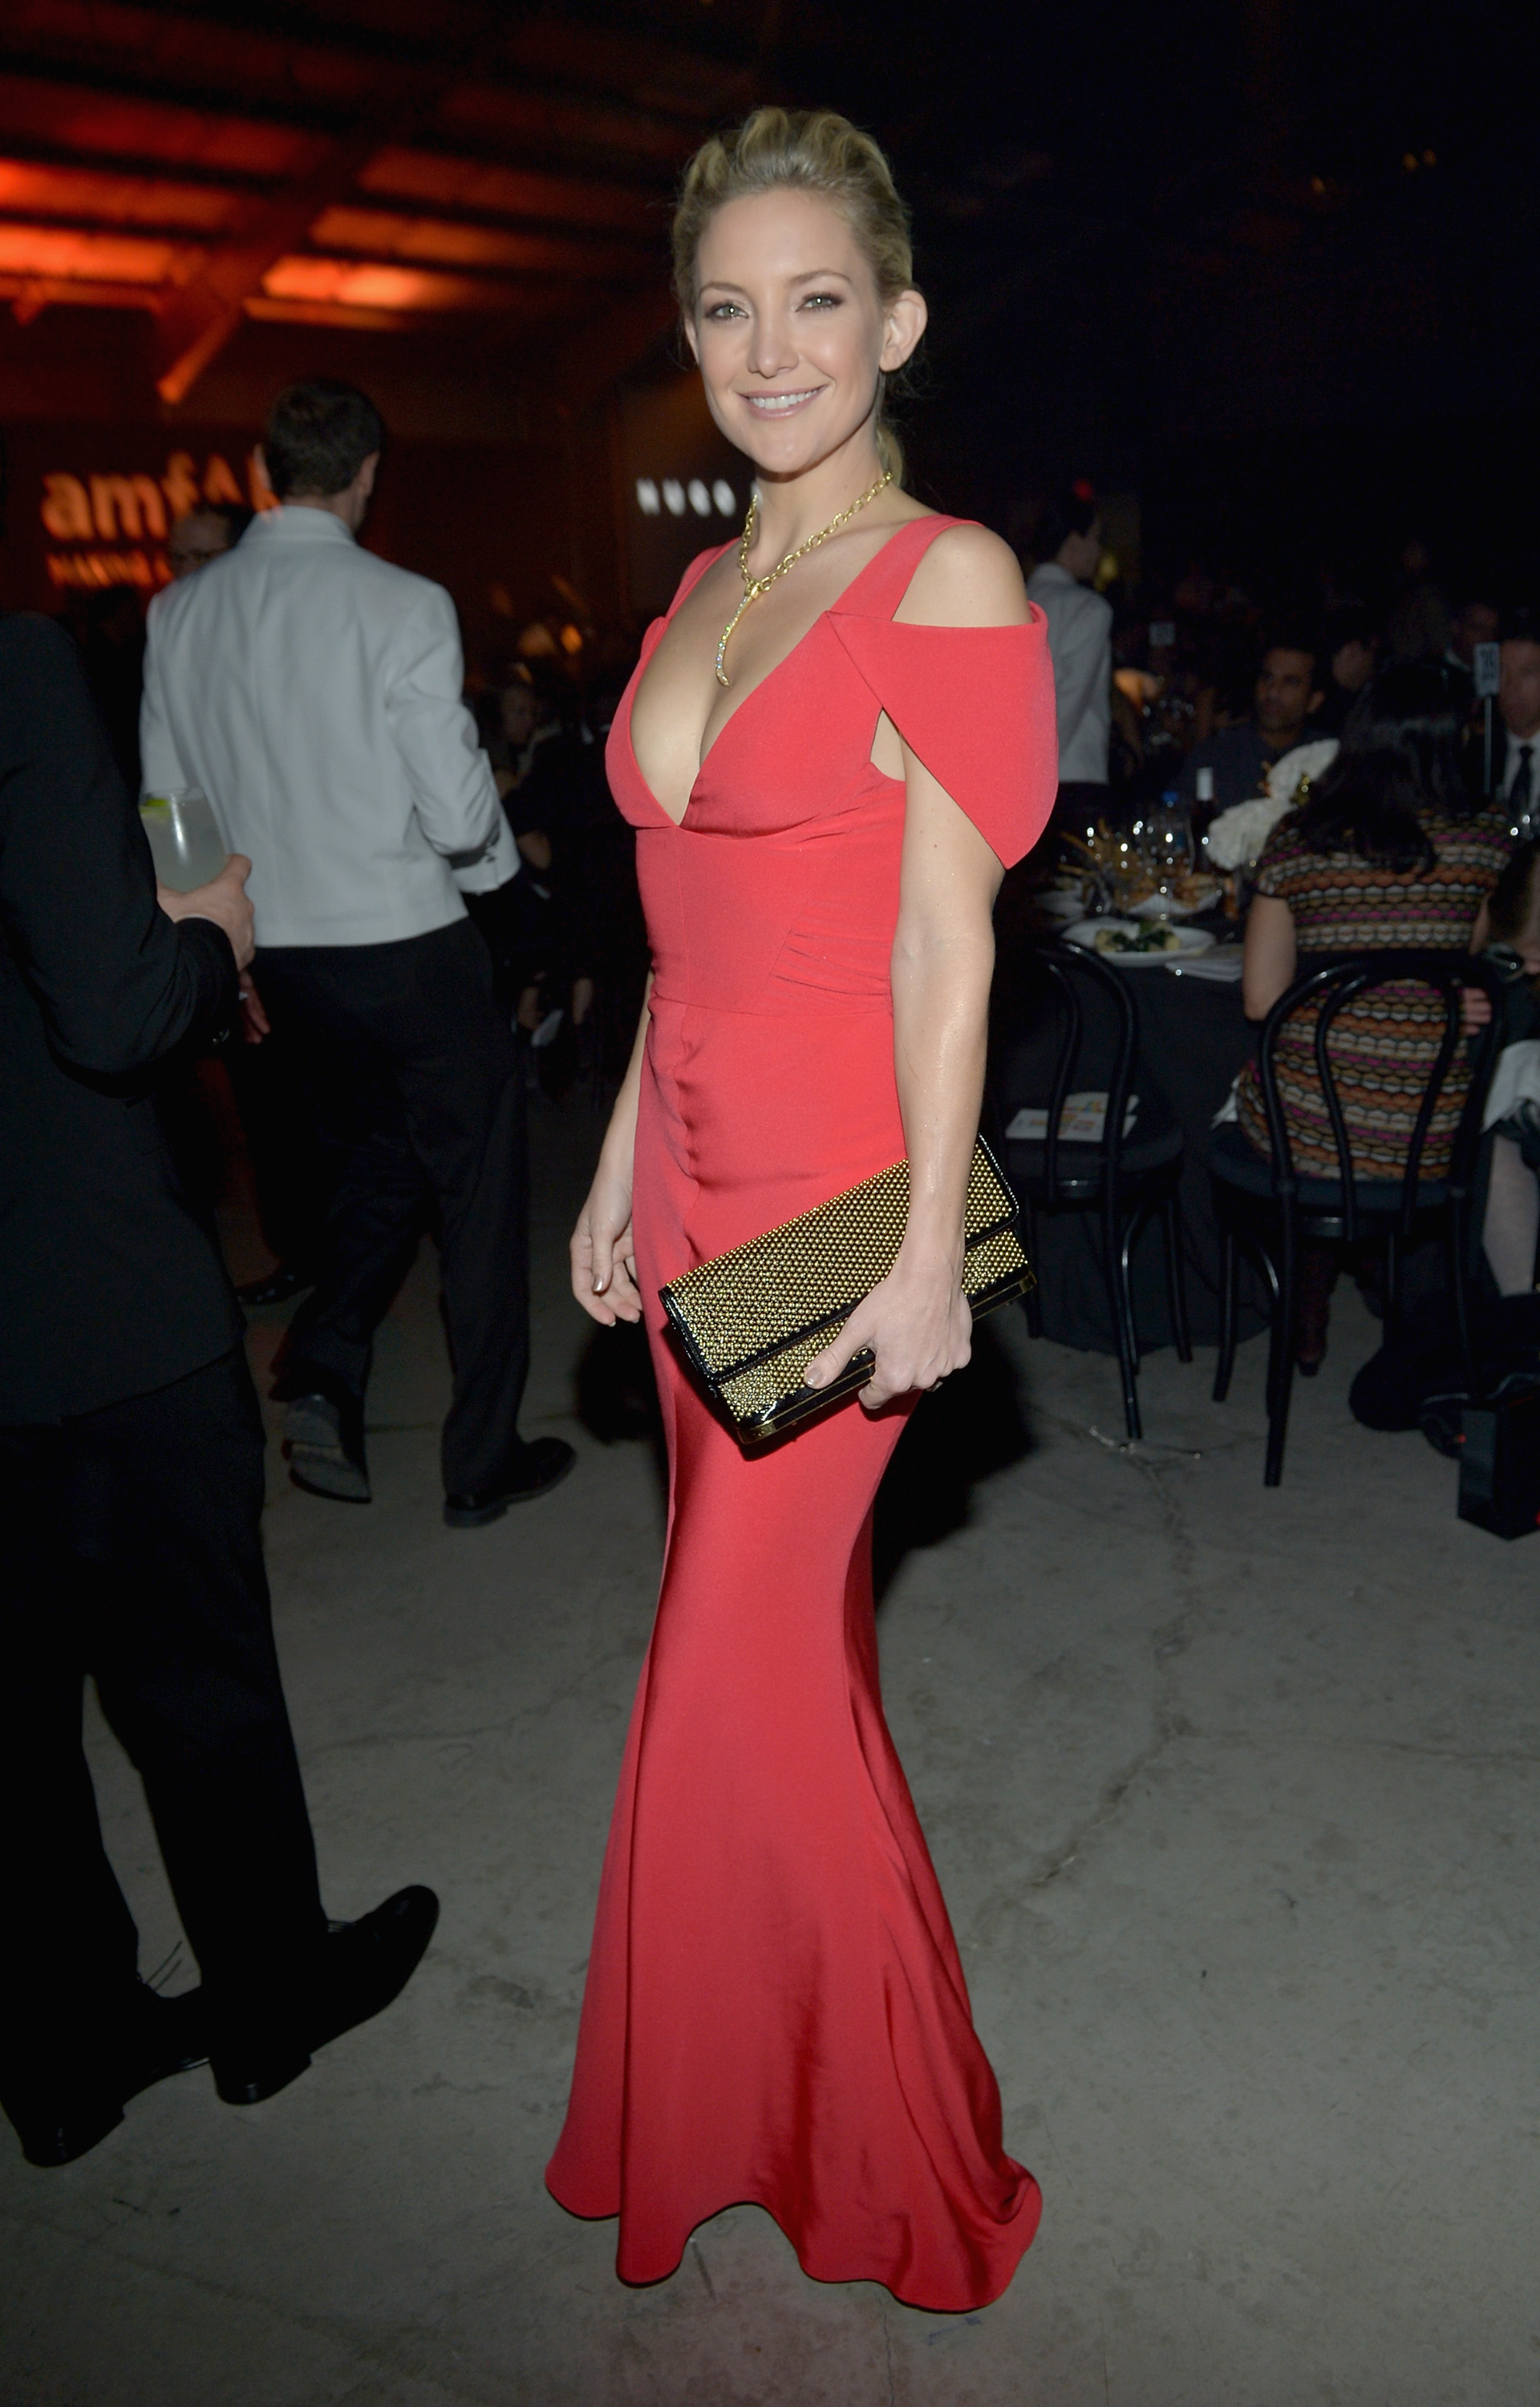 Kate Hudson stepped out in a red gown for the amfAR Gala in LA.